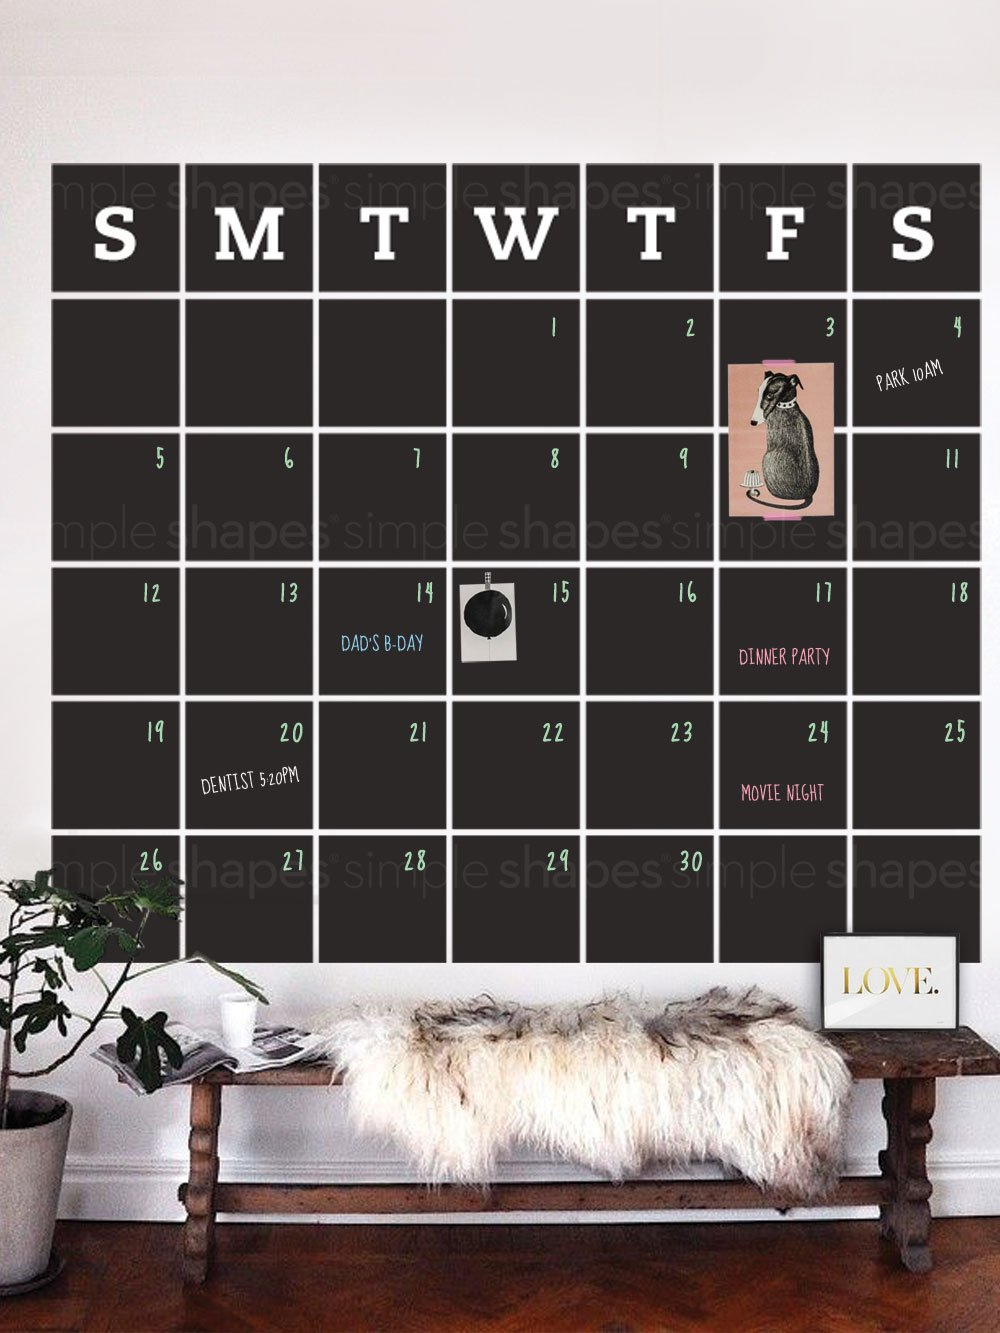 Chalkboard Wall Decal Calendar, Blackboard Calendar, Wall Calendar - Extra Large - by Simple Shapes